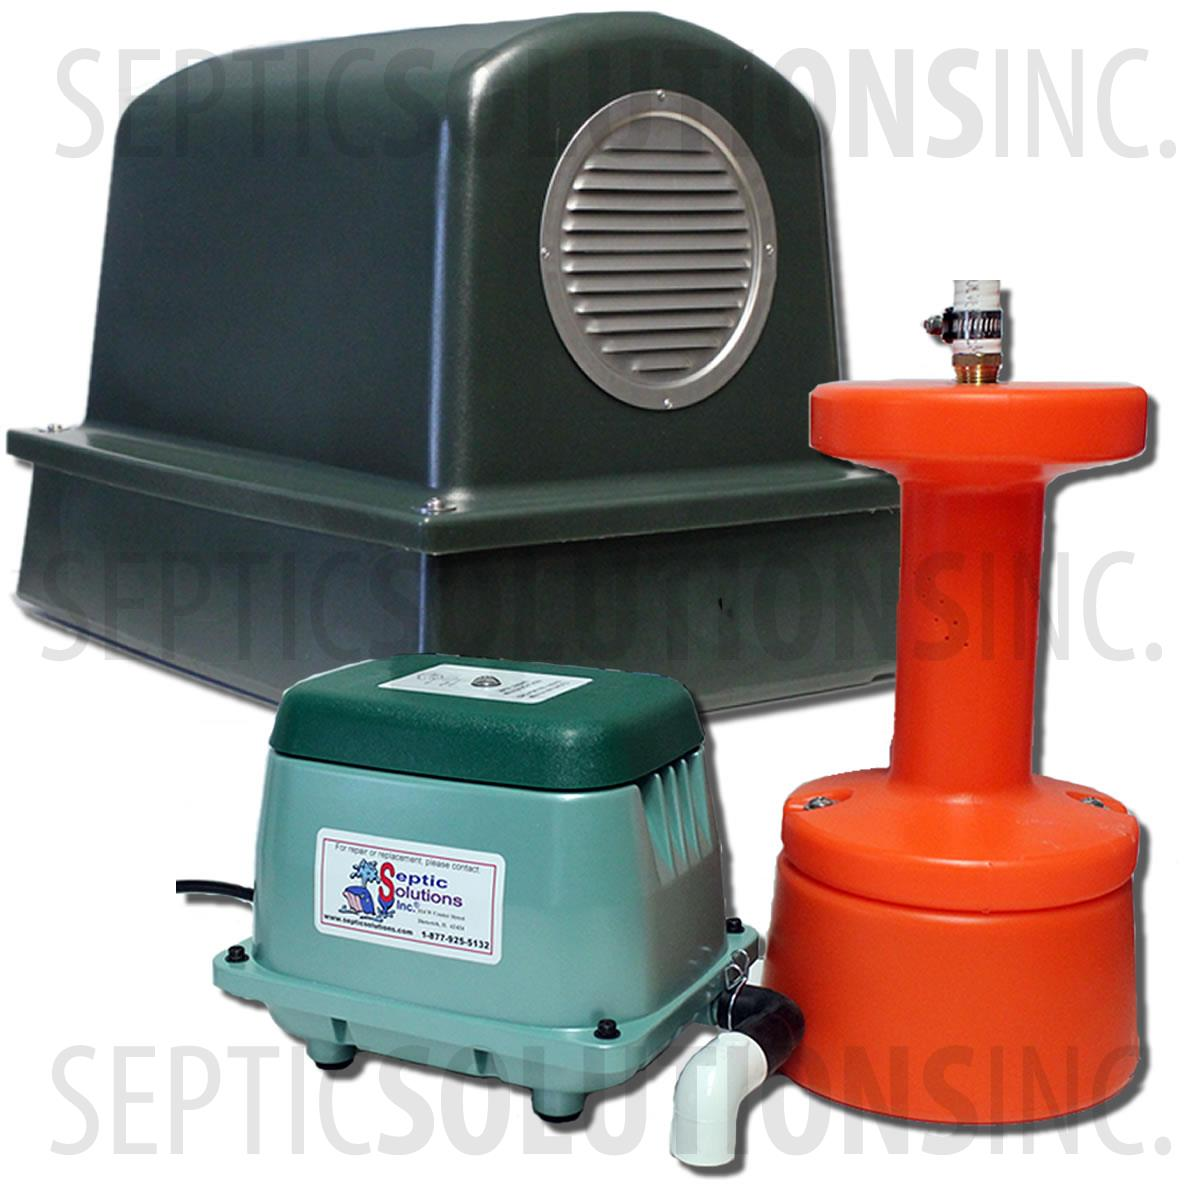 SepSaverPkgPlus_1?w=600 sepaerator saver package plus septic tank aerator convert your Septic Alarm Wiring at panicattacktreatment.co